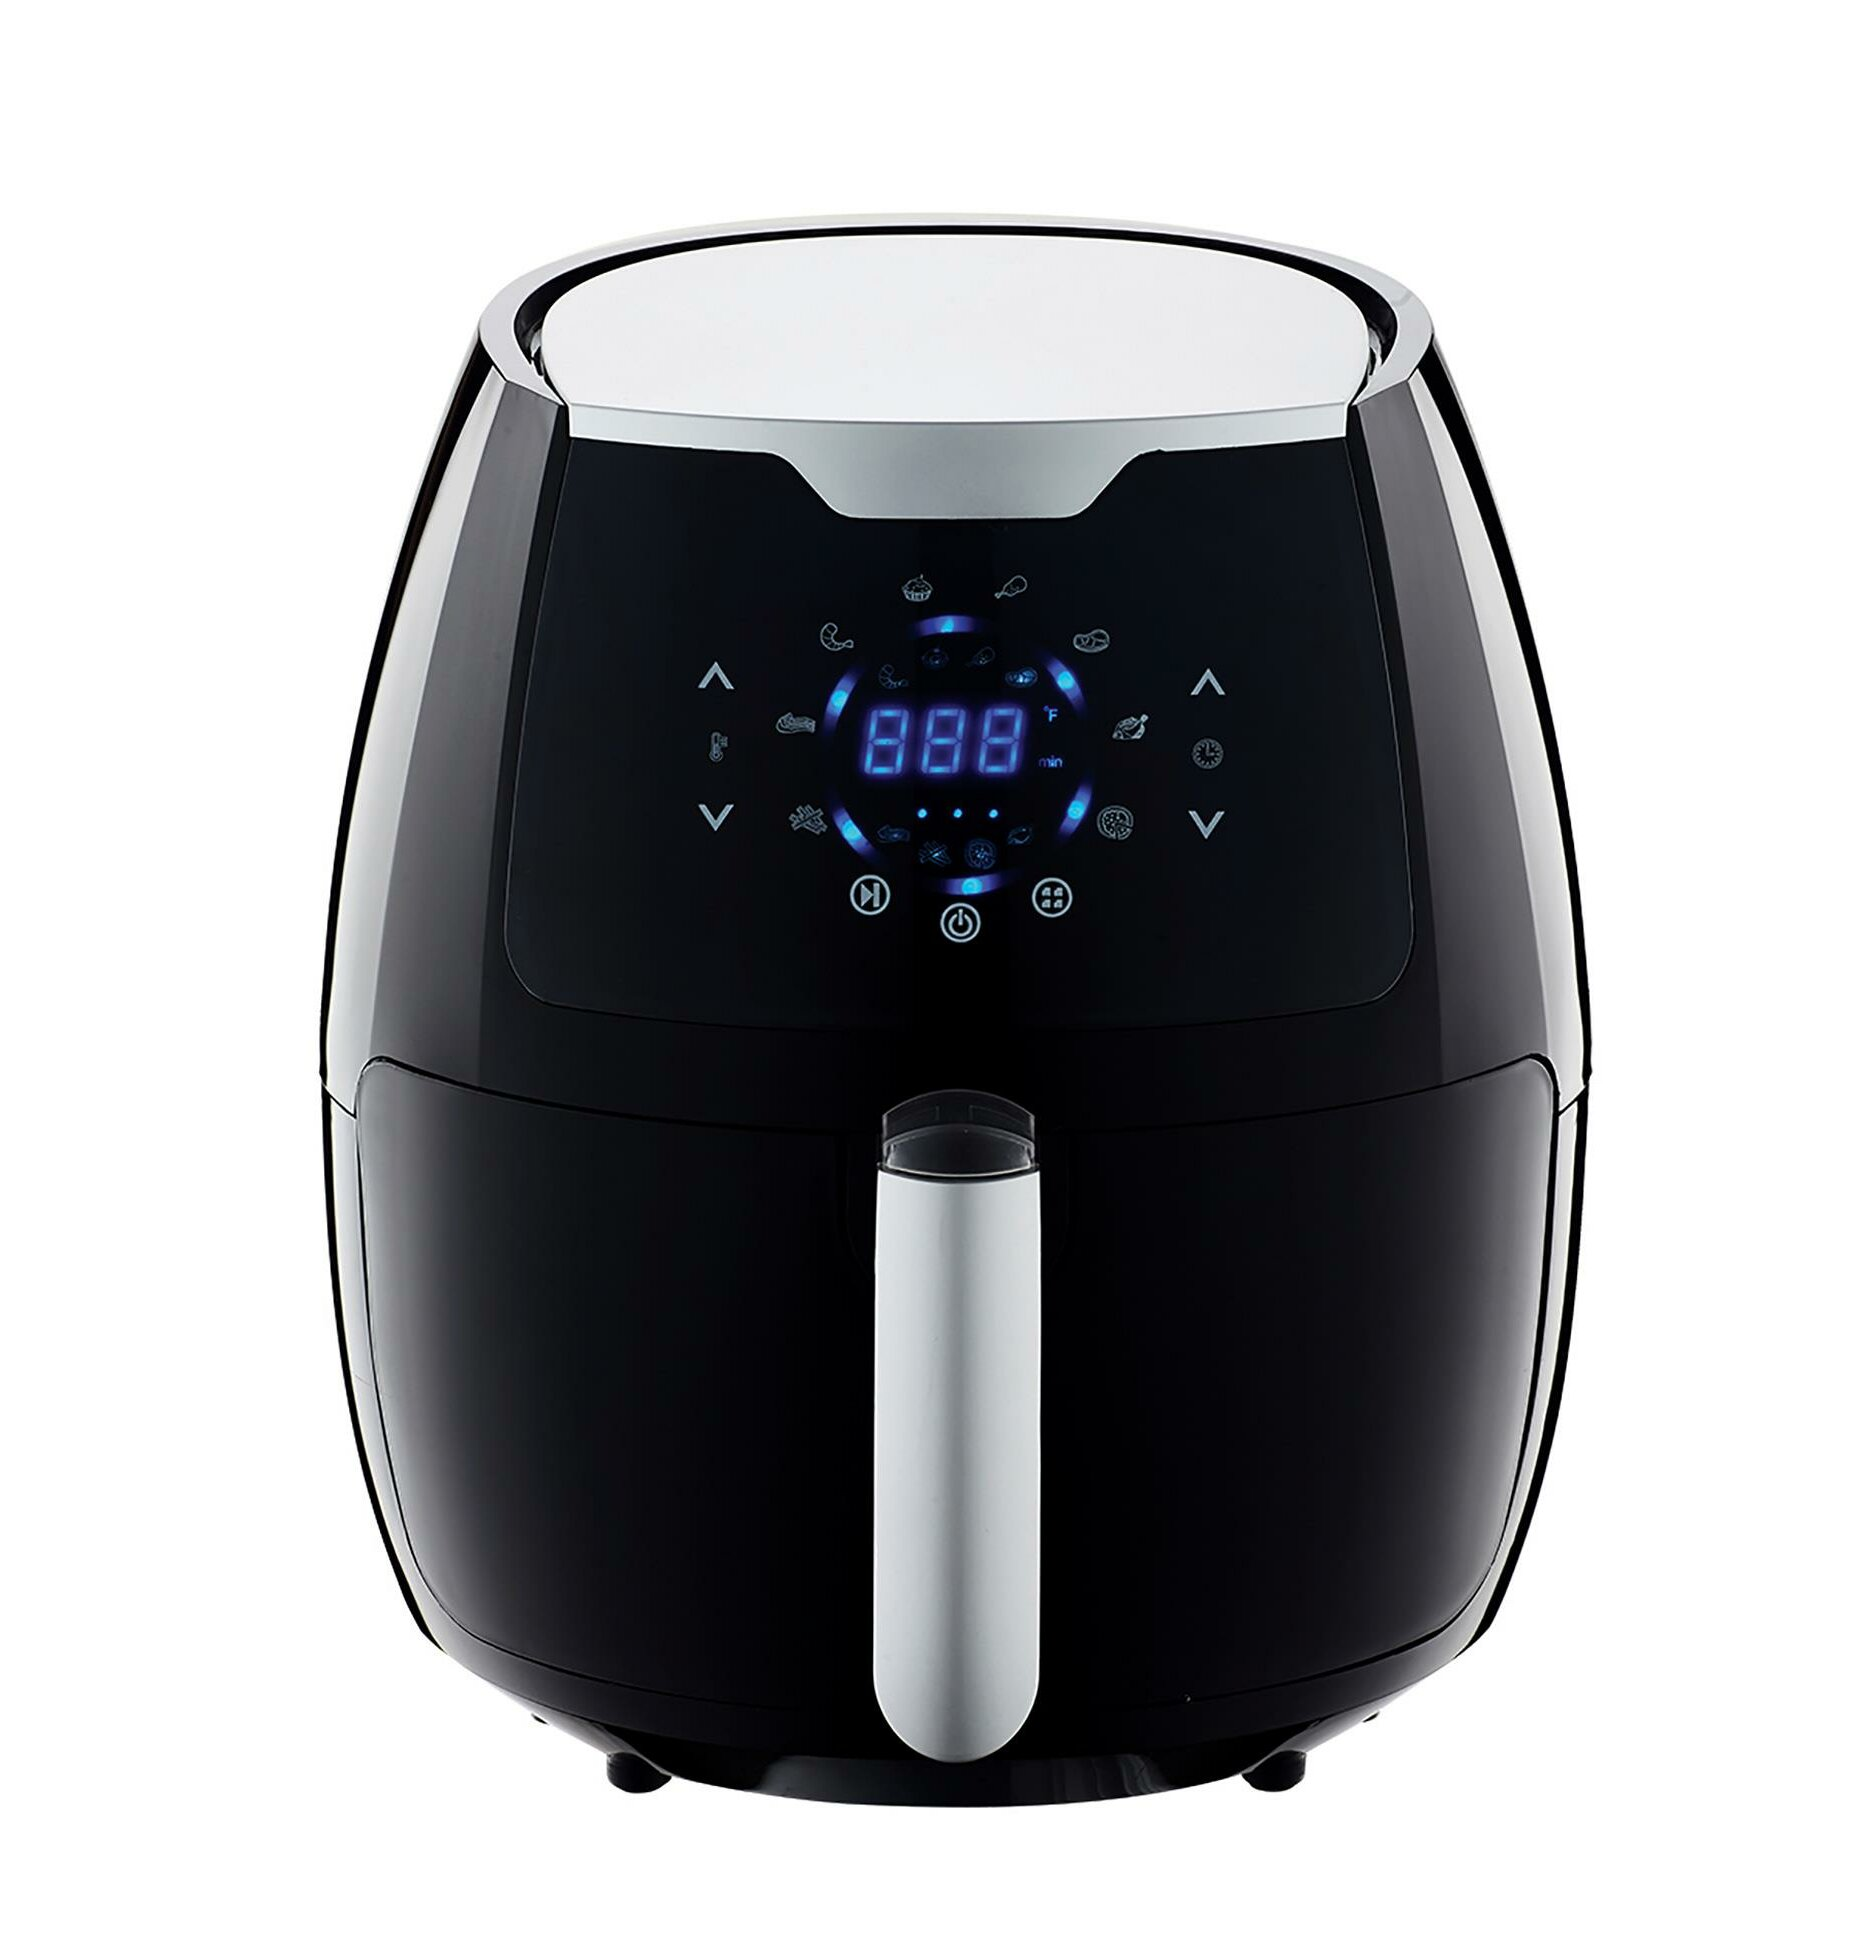 Air Fryer-LED control panel with 7 pre-set functions-3.2 litres capacity